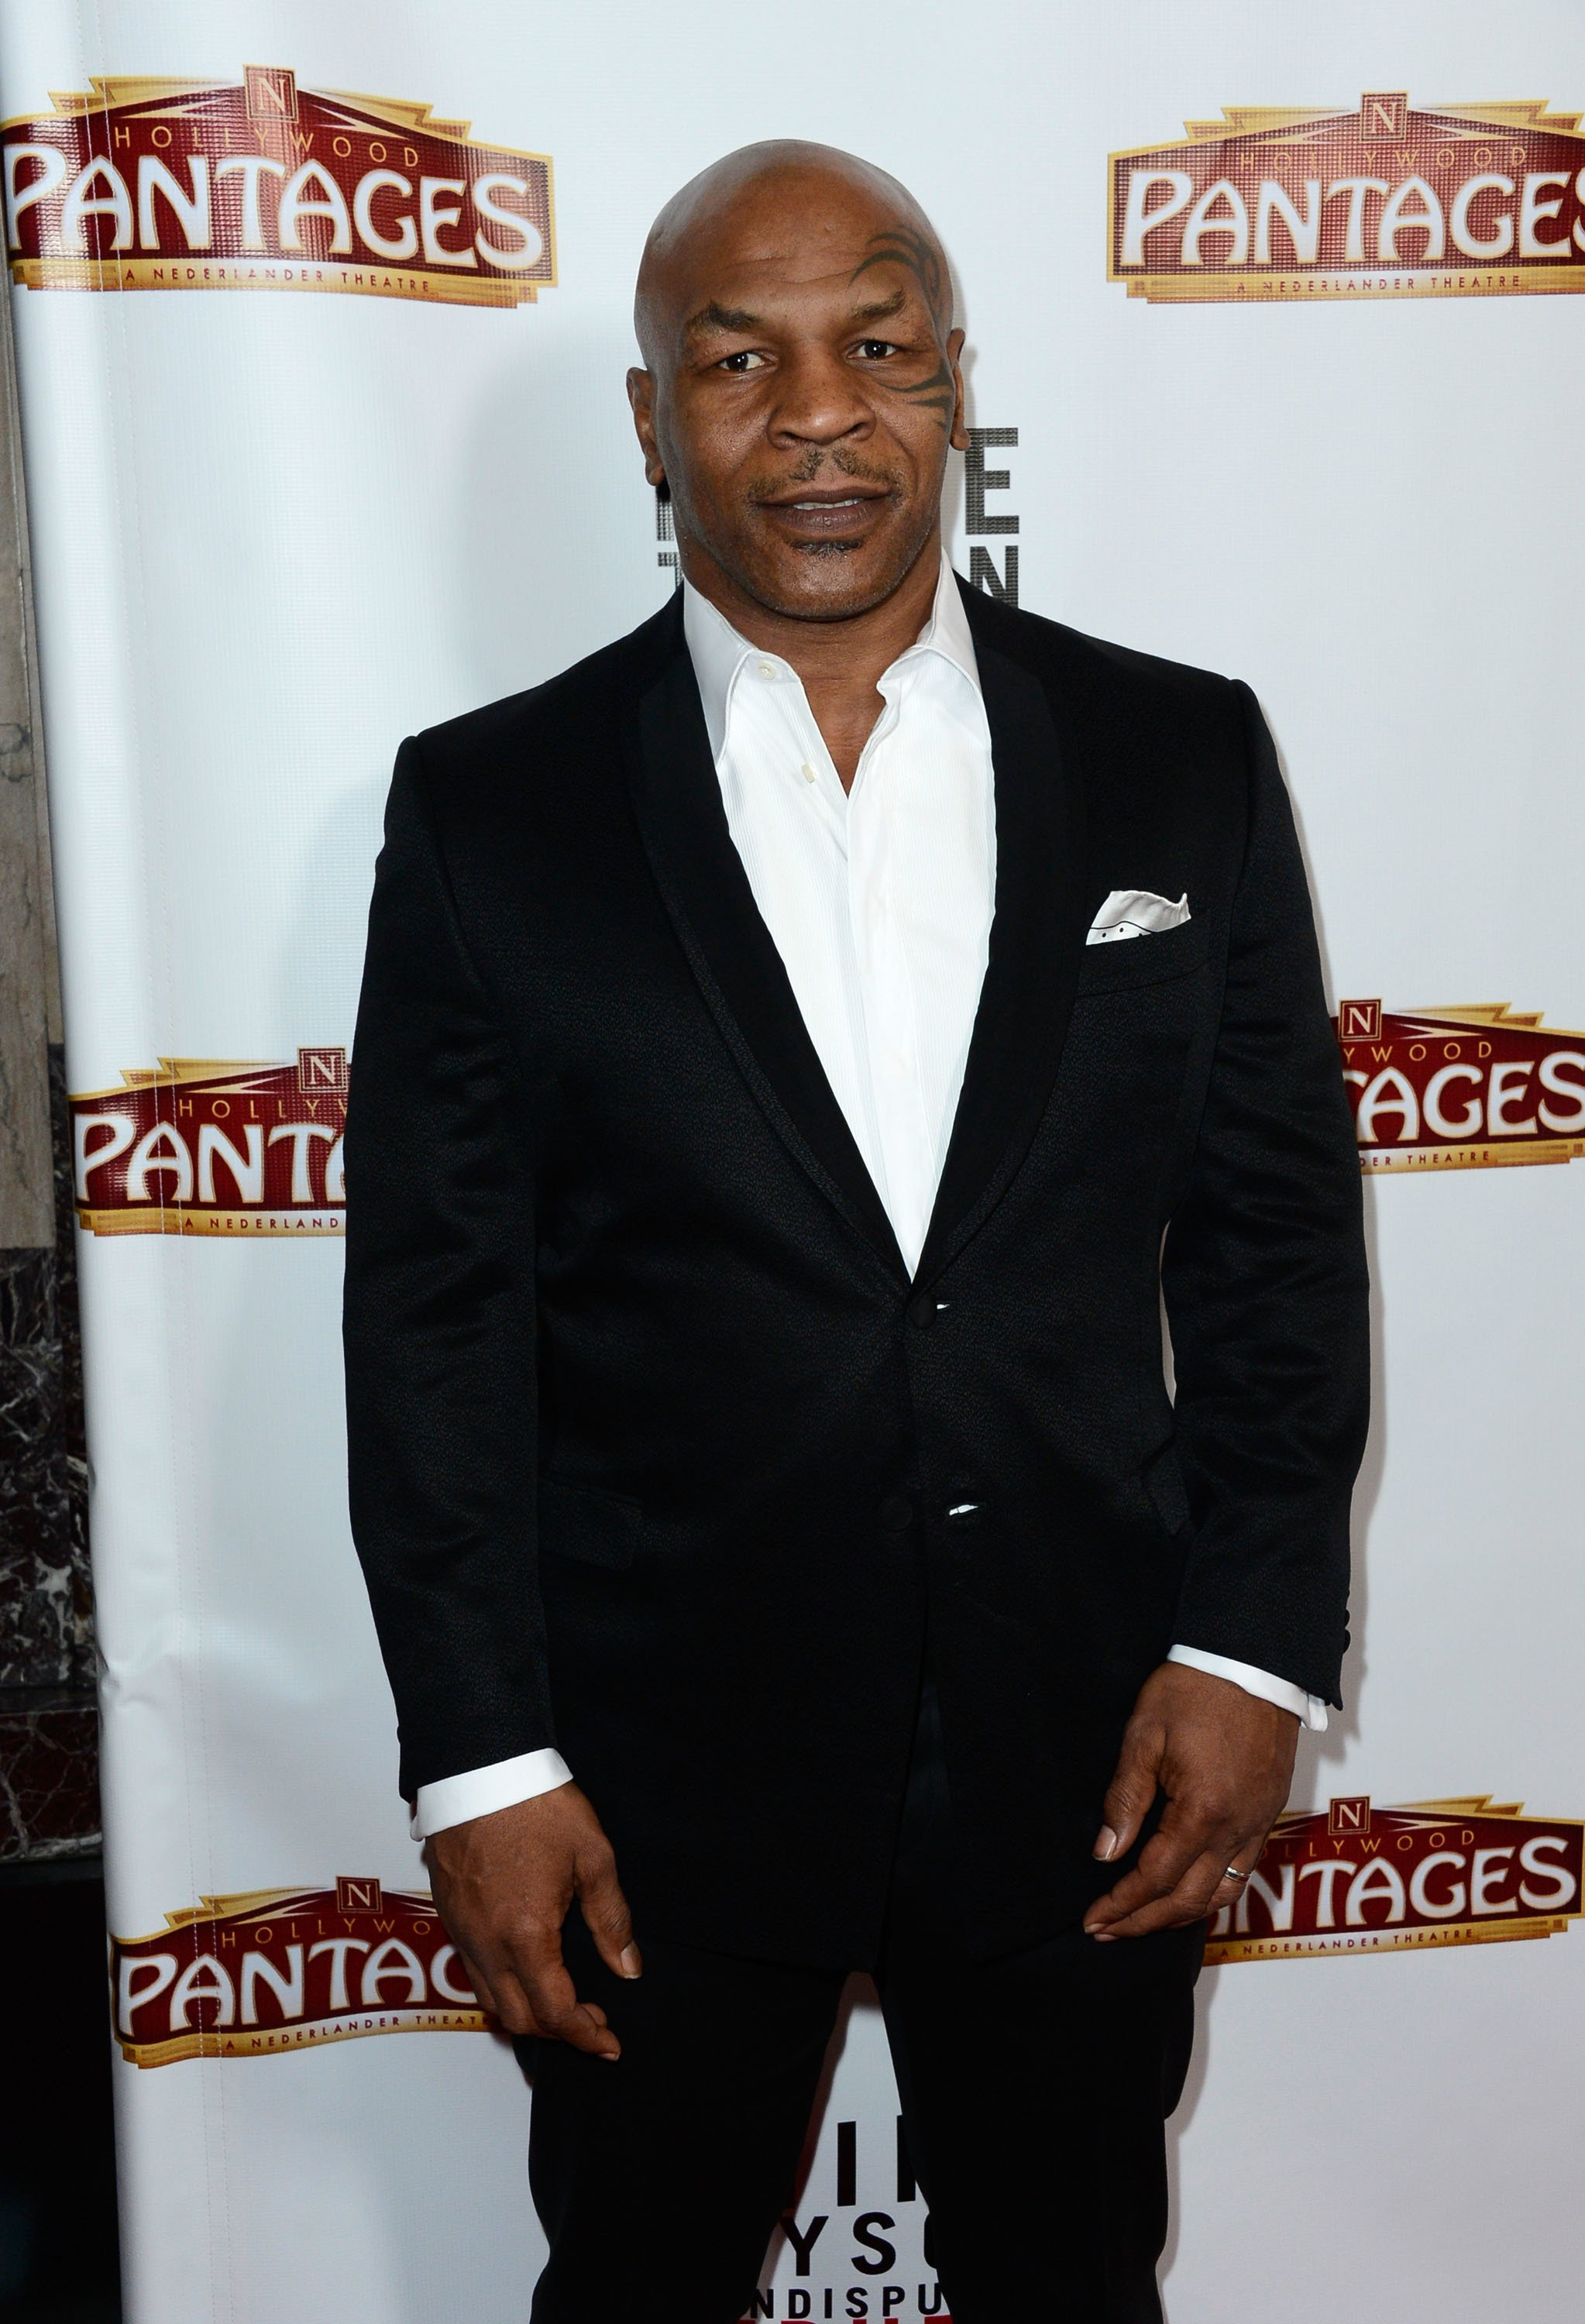 Mike Tyson arrives at the Pantages Theatre on March 8, 2013 in Hollywood, California | Photo: Getty Images